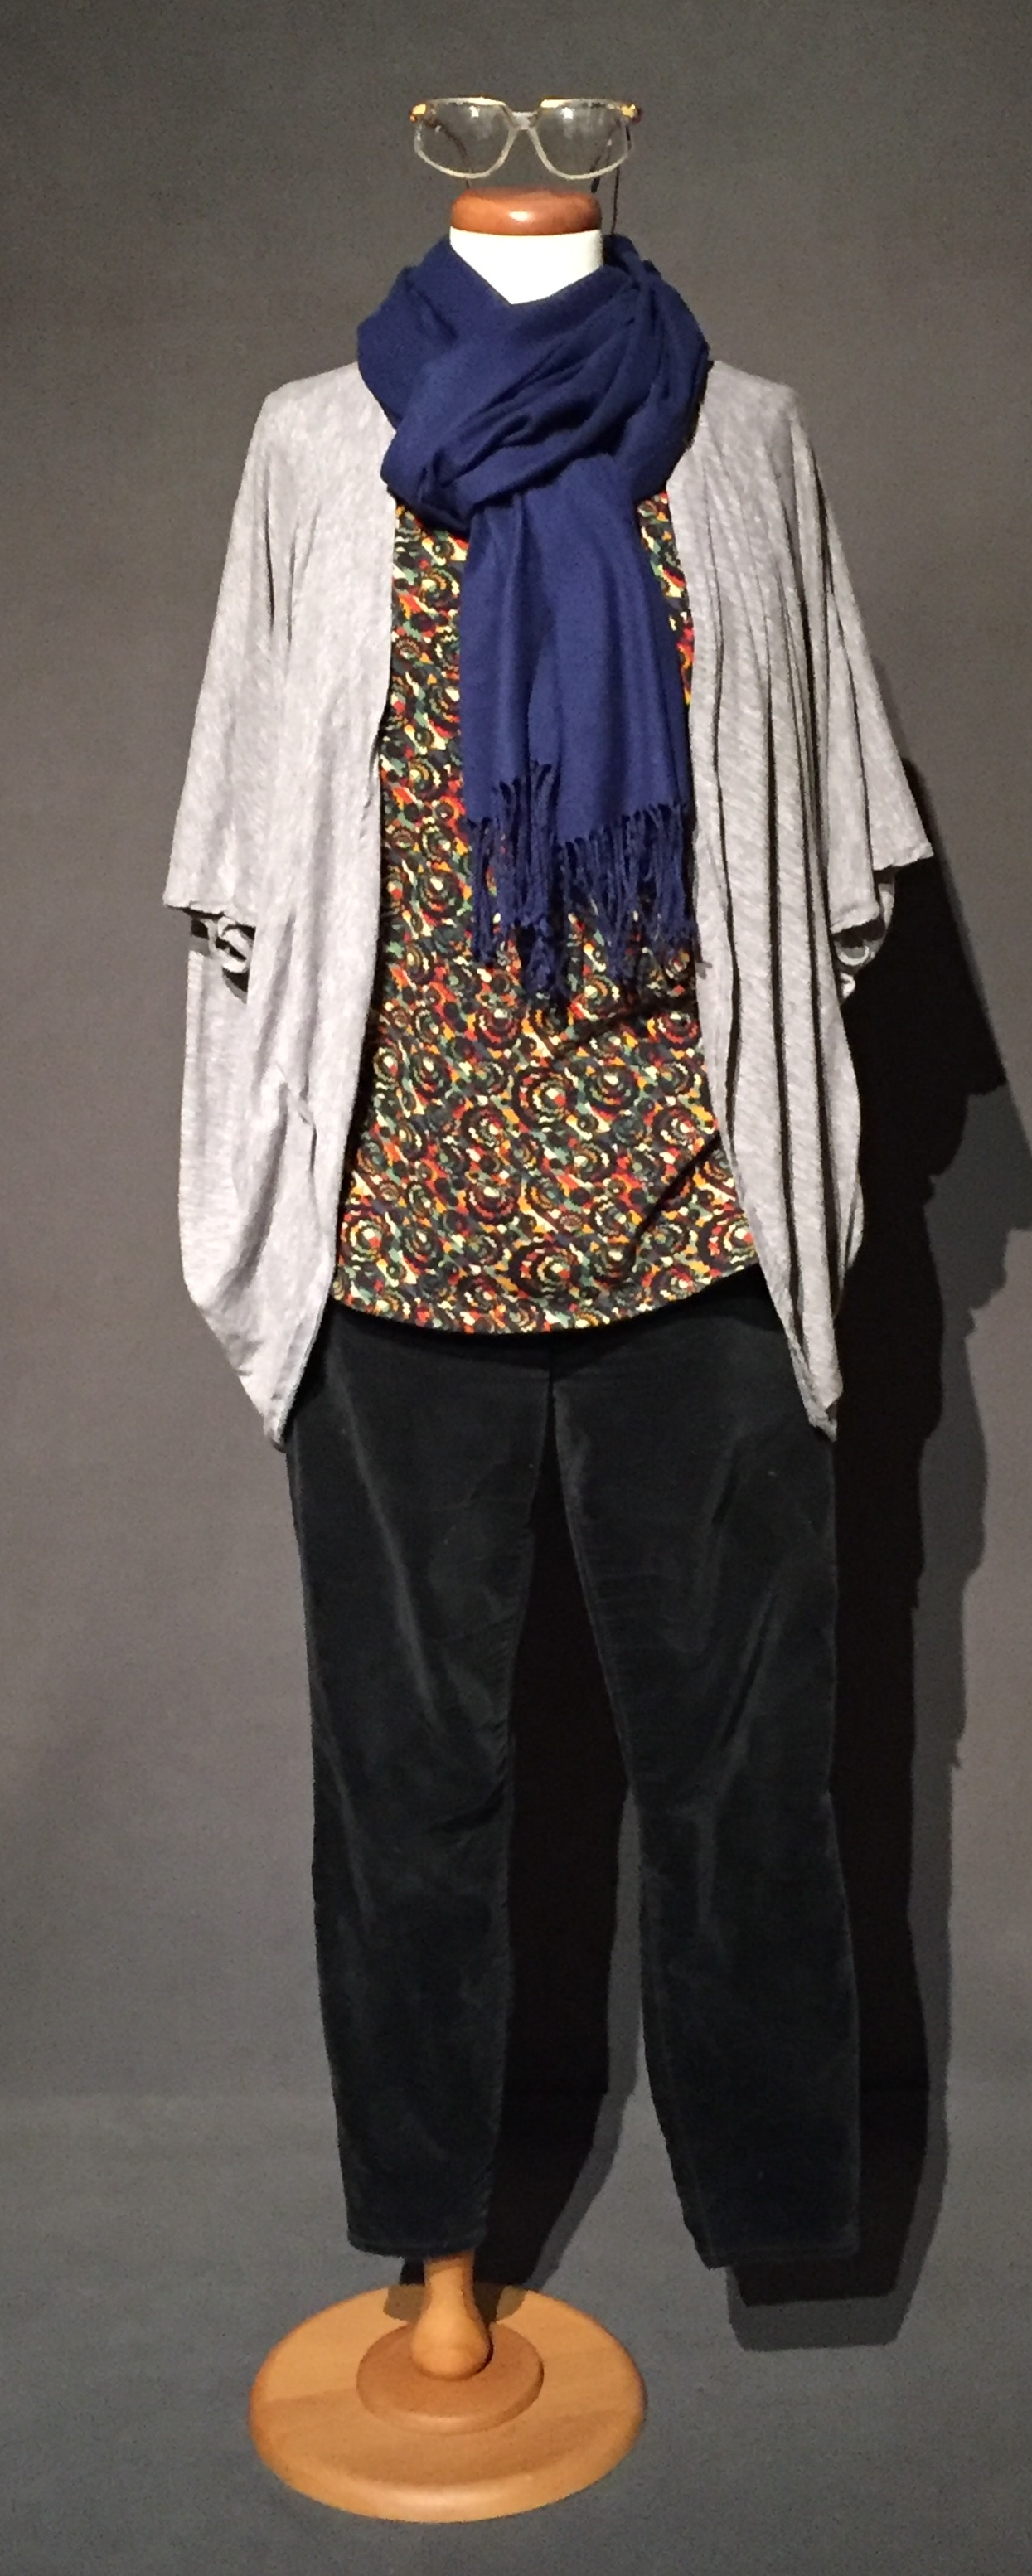 """- Black pant, flower print top, sweater, blue scarf, glasses, pink flatsOwner – Emma, queer lesbian, woman, 30, lives in Iowa c. 2010s""""I have always read as straight. People, even other queer people, read me as straight and so I have found that it doesn't particularly matter how I perform my gender or my identity. I am read as a straight woman, so I had to say out loud """"I'm gay,"""" or """"I'm a lesbian"""" or I'll talk about my girlfriend, and I'll have to be like very explicit. """"No, we have a joint checking account, it's a partnership, we're together, at night get in the same bed."""" I've had to be really vocal. I've gone through phases in my life, where I've tried to display my sexual orientation in a physical way, you know everyone always talks about, the baby dyke's first hair cut type of thing. I didn't have any sort of attraction to, I didn't want to butch up in anyway. Any attempt I've made to butch-it-up, is just like confusing for me and the people around me. I gave up with that, and so at this point, I have a lot to say, kind of about like, femme identity. I just have to say out loud a lot that I'm gay."""" – personal interview with Emma, November 4, 2017"""